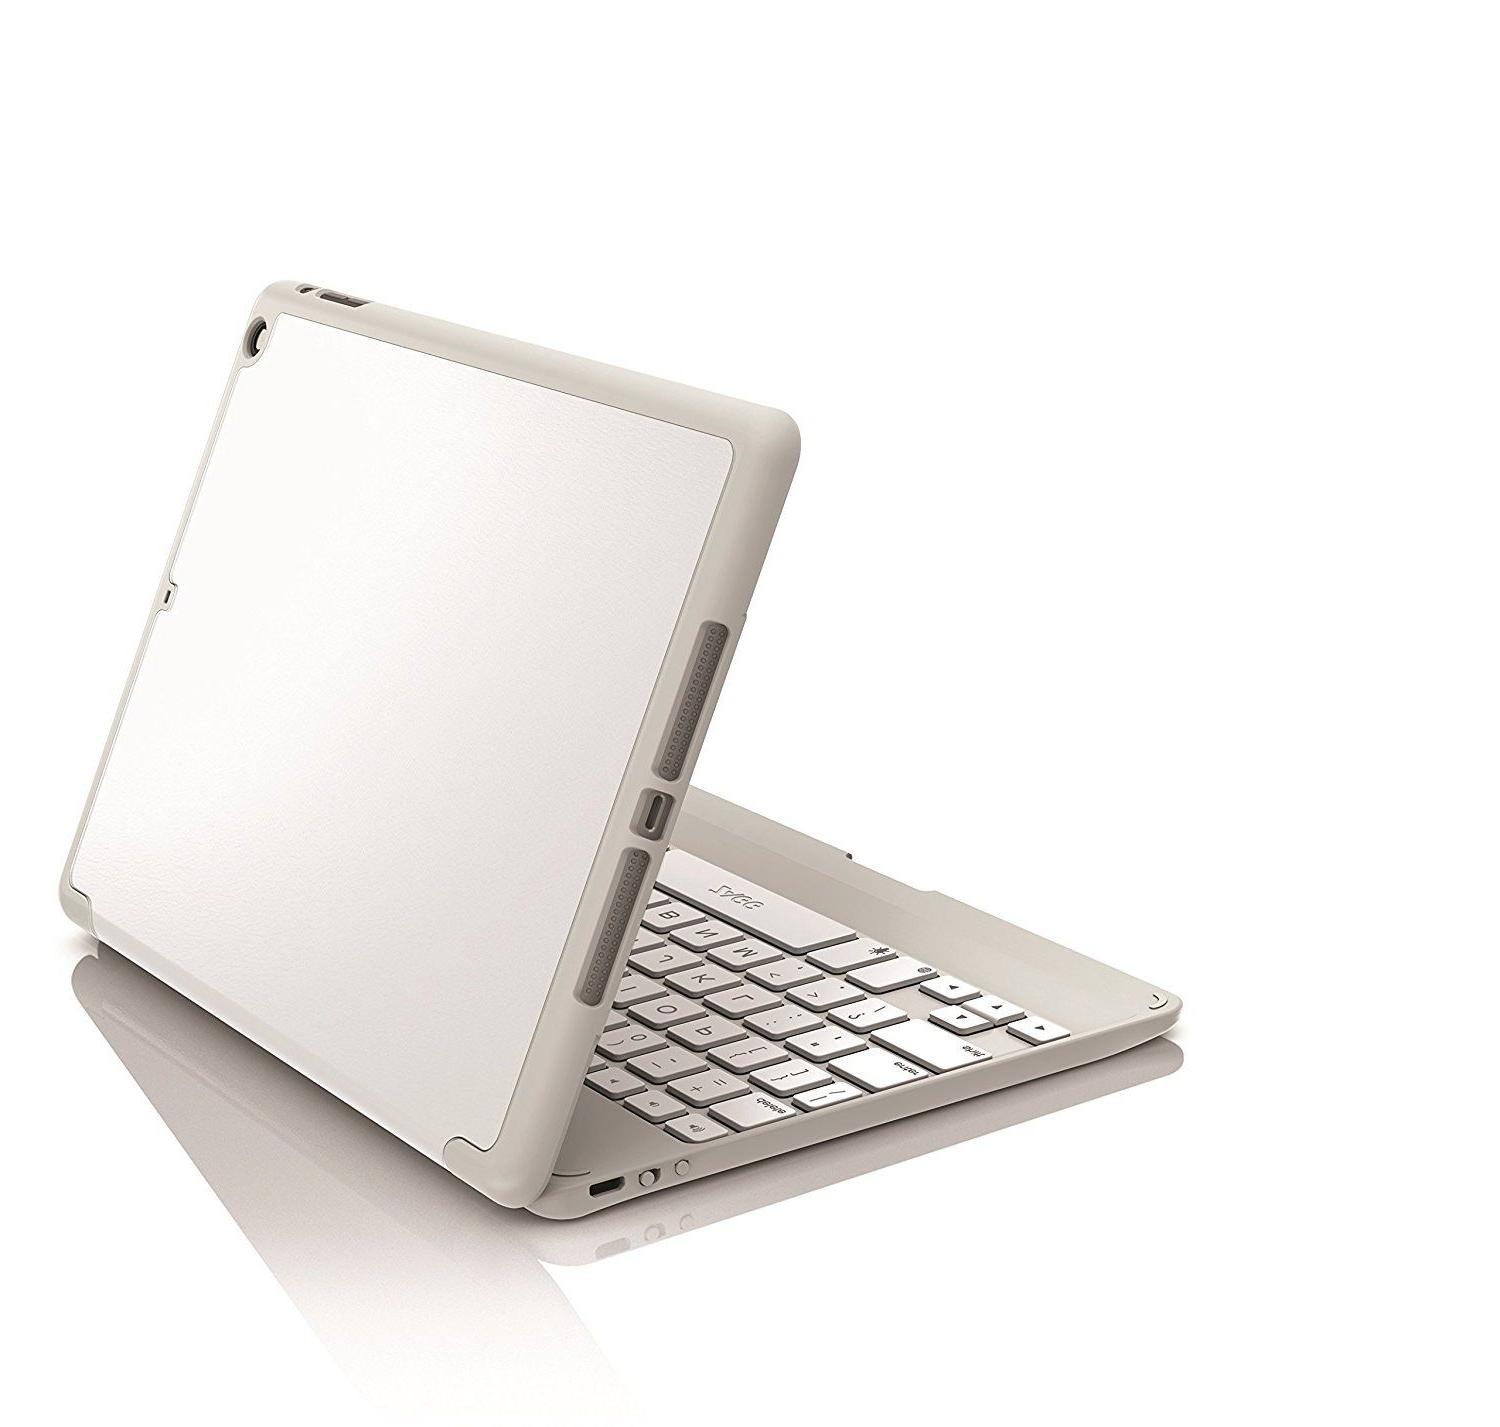 ZAGG Folio Case, Hinged with Bluetooth Keyboard for iPad Air